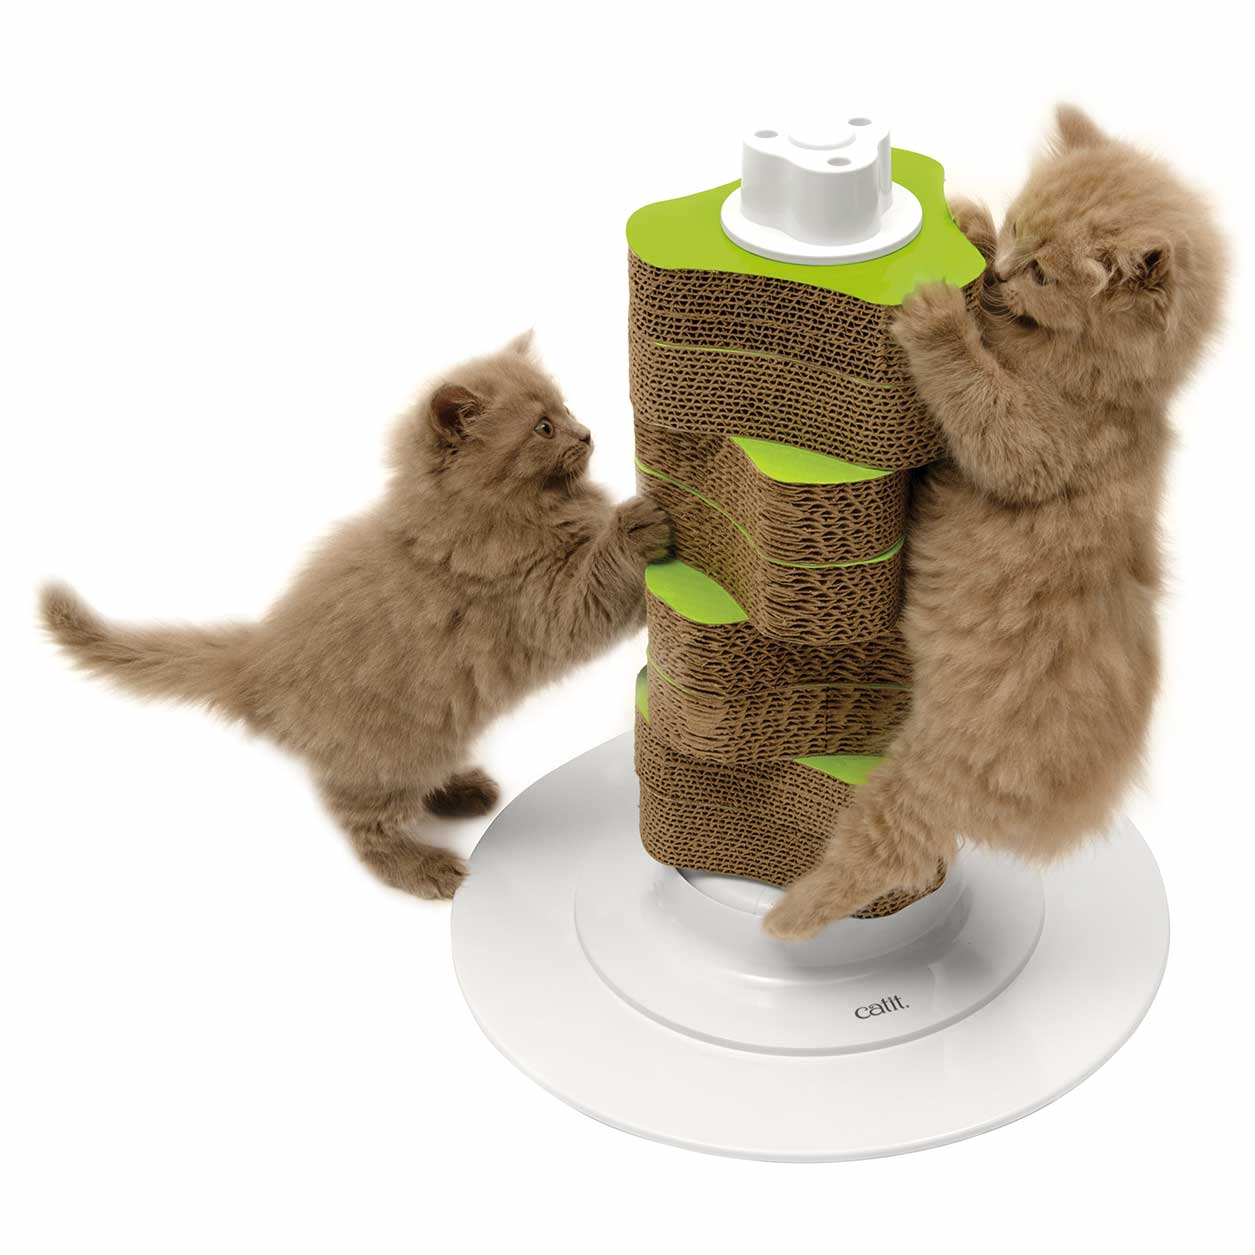 Two kittens scratching the Senses 2.0 Scratcher